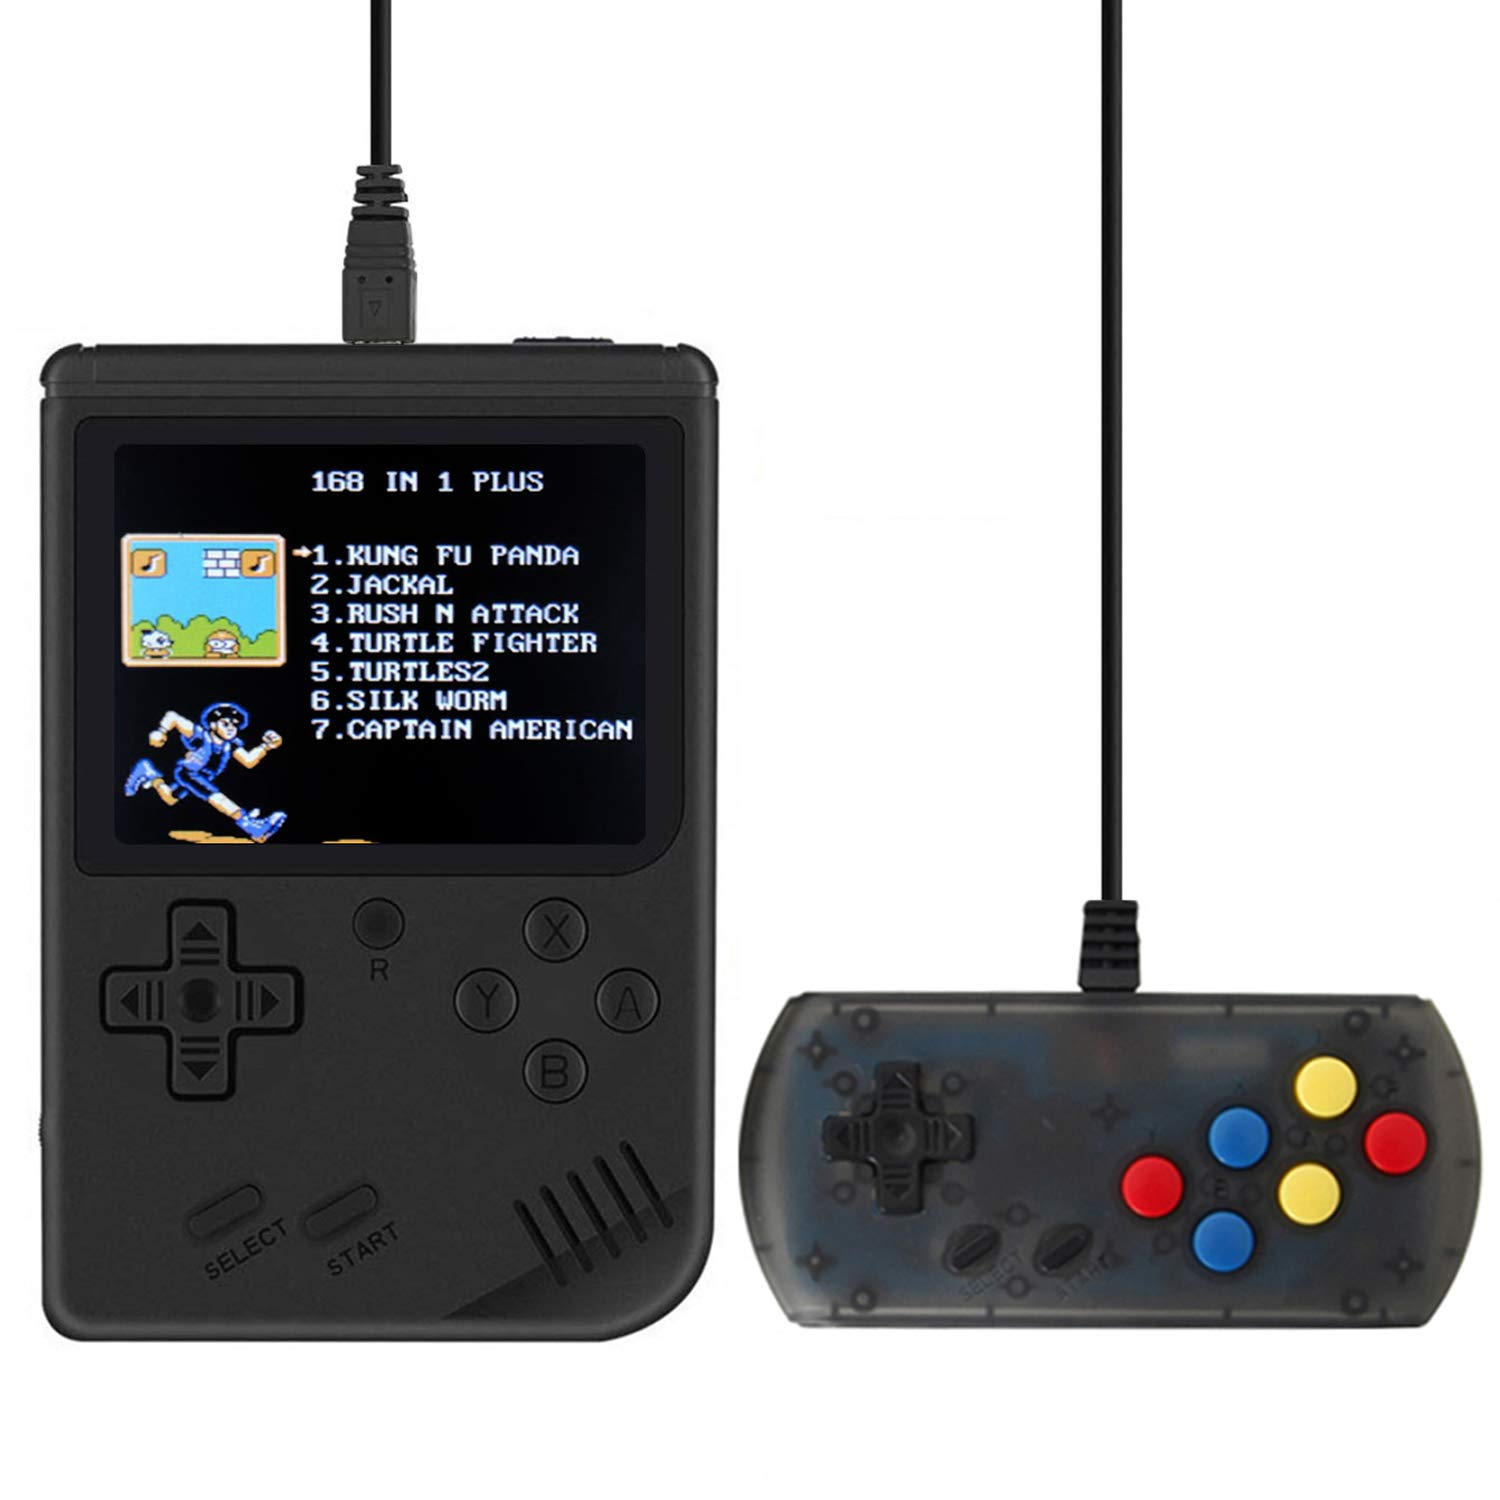 MyArTool Retro FC Handheld Game Console, Built-in Up to 168 8bit Classic Games 3 Inch LCD Screen Portable Video Game Consoles Synchronize with TV and Support for Two Players by MyArTool (Image #1)